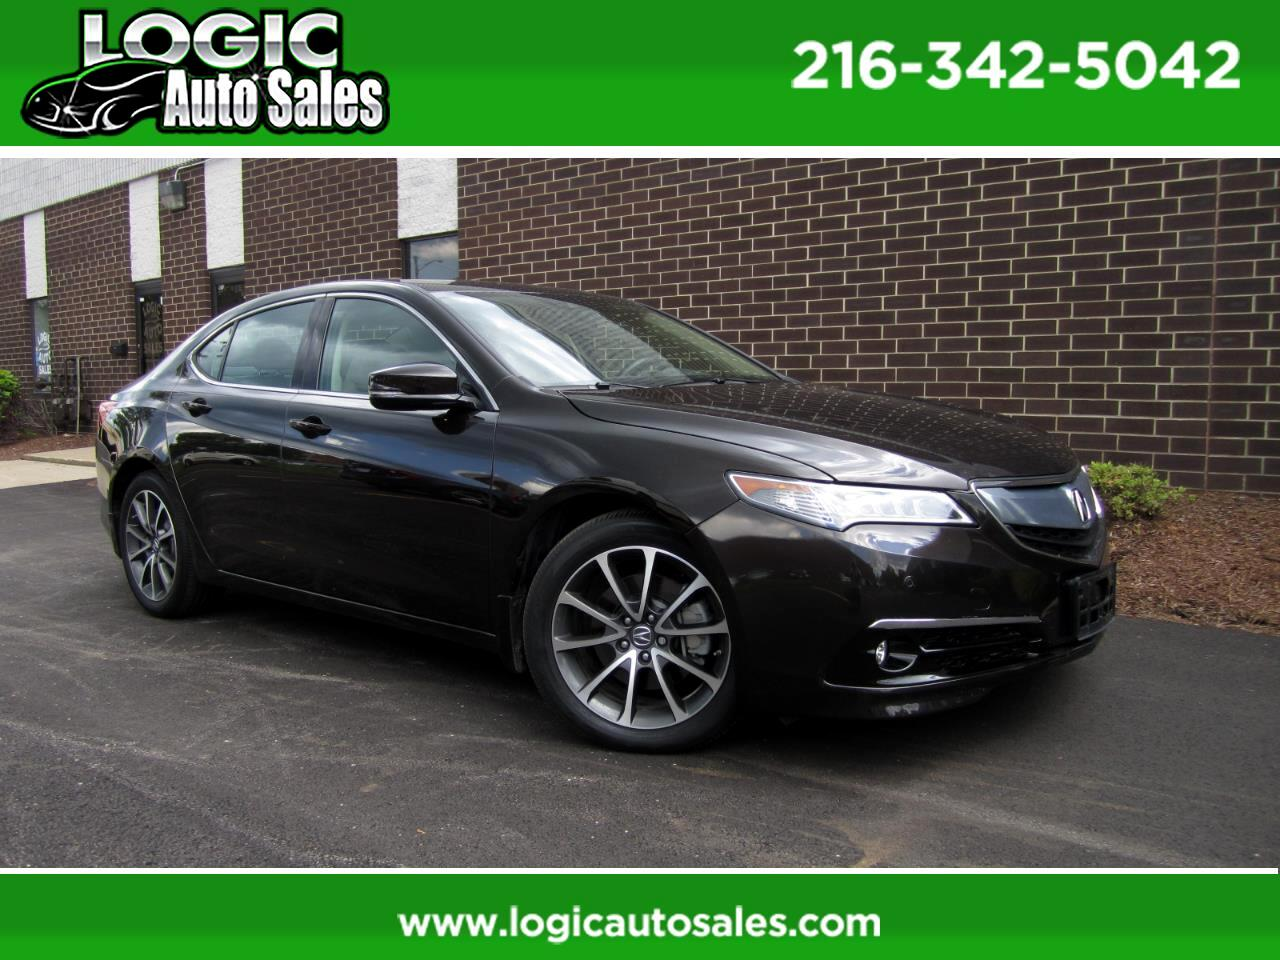 2015 Acura TLX 4dr Sdn SH-AWD V6 Advance